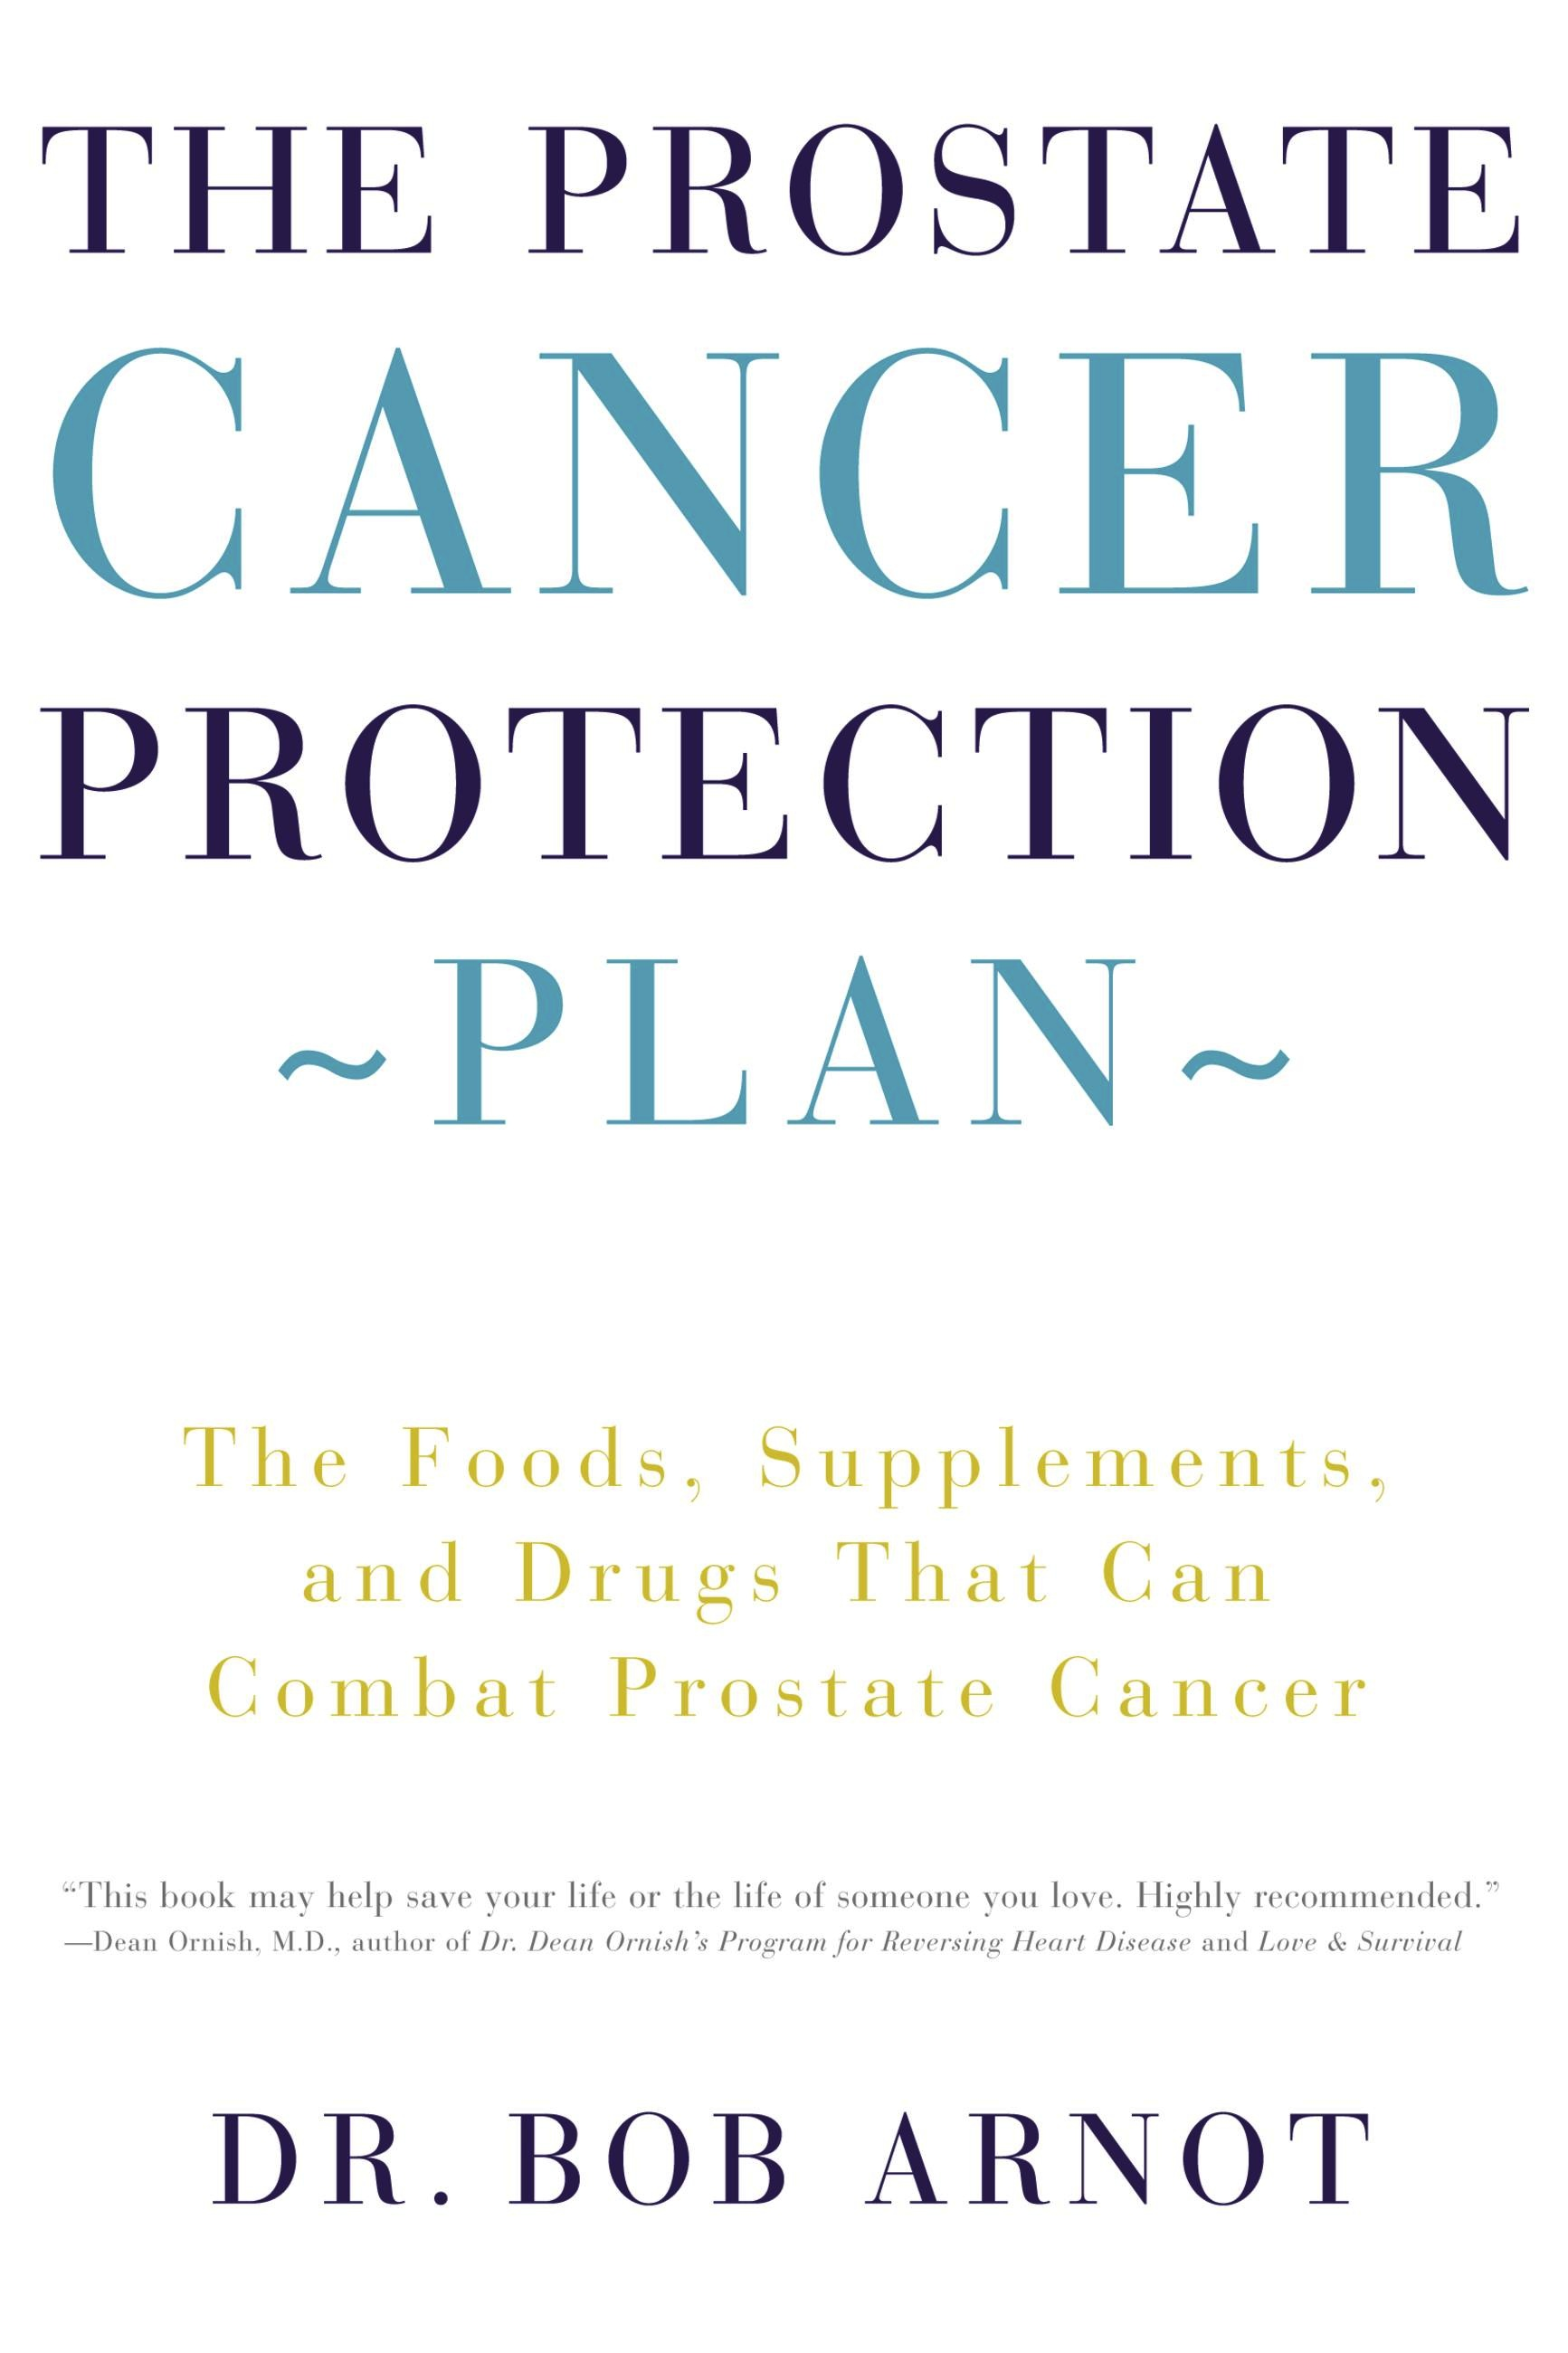 Prostate Cancer Protection Plan, The